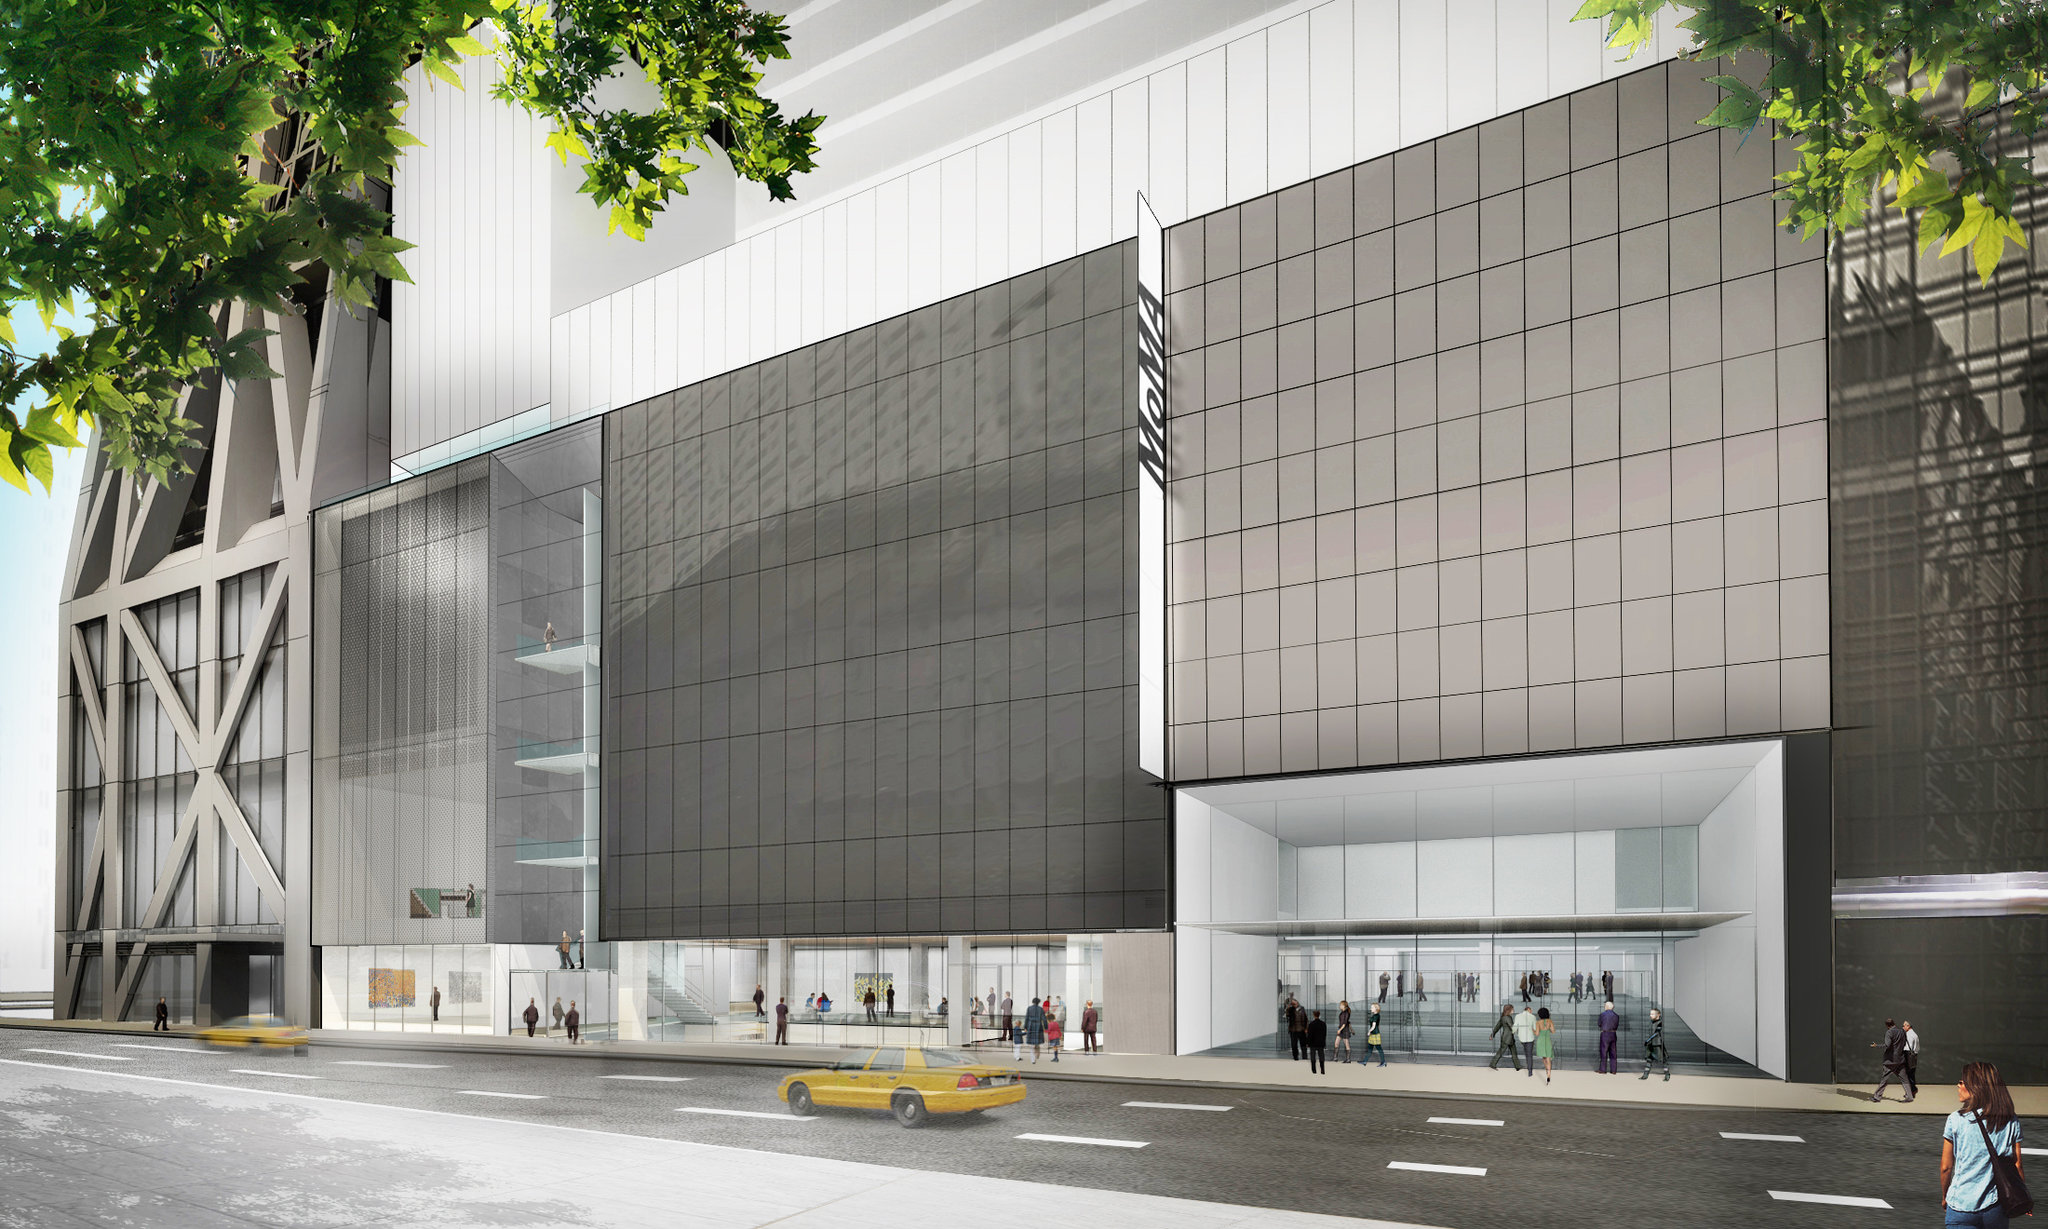 Rendering of a solid museum entrance